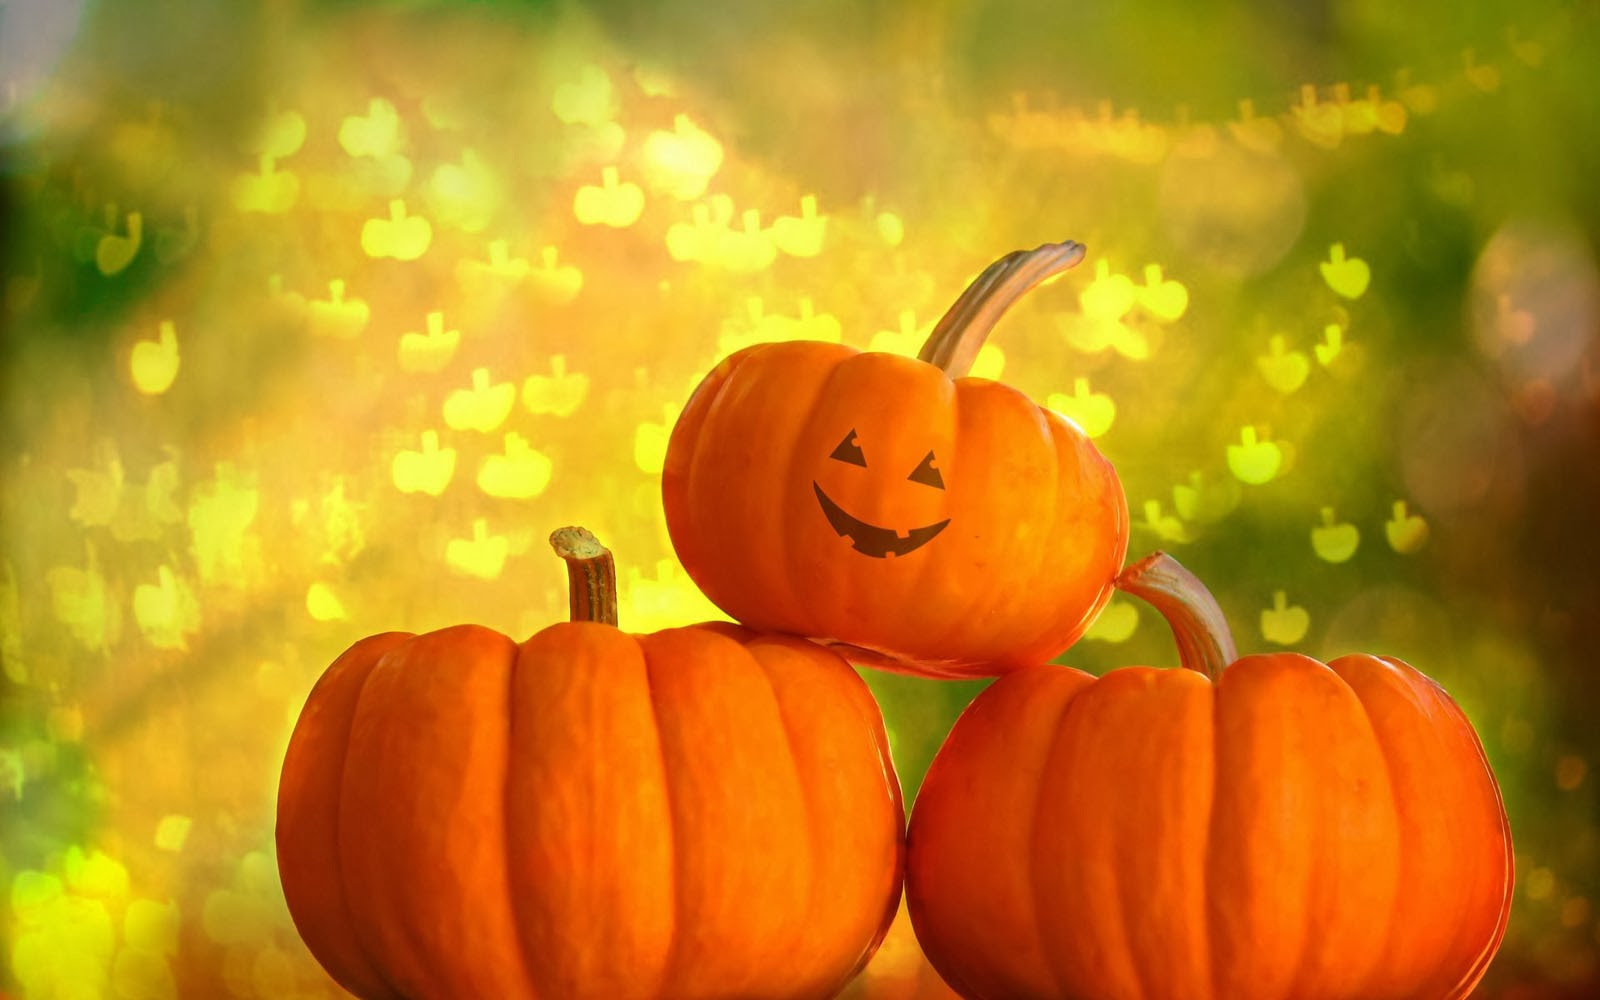 Tag Pumpkin Wallpapers Backgrounds Photos Images andPictures for 1600x1000